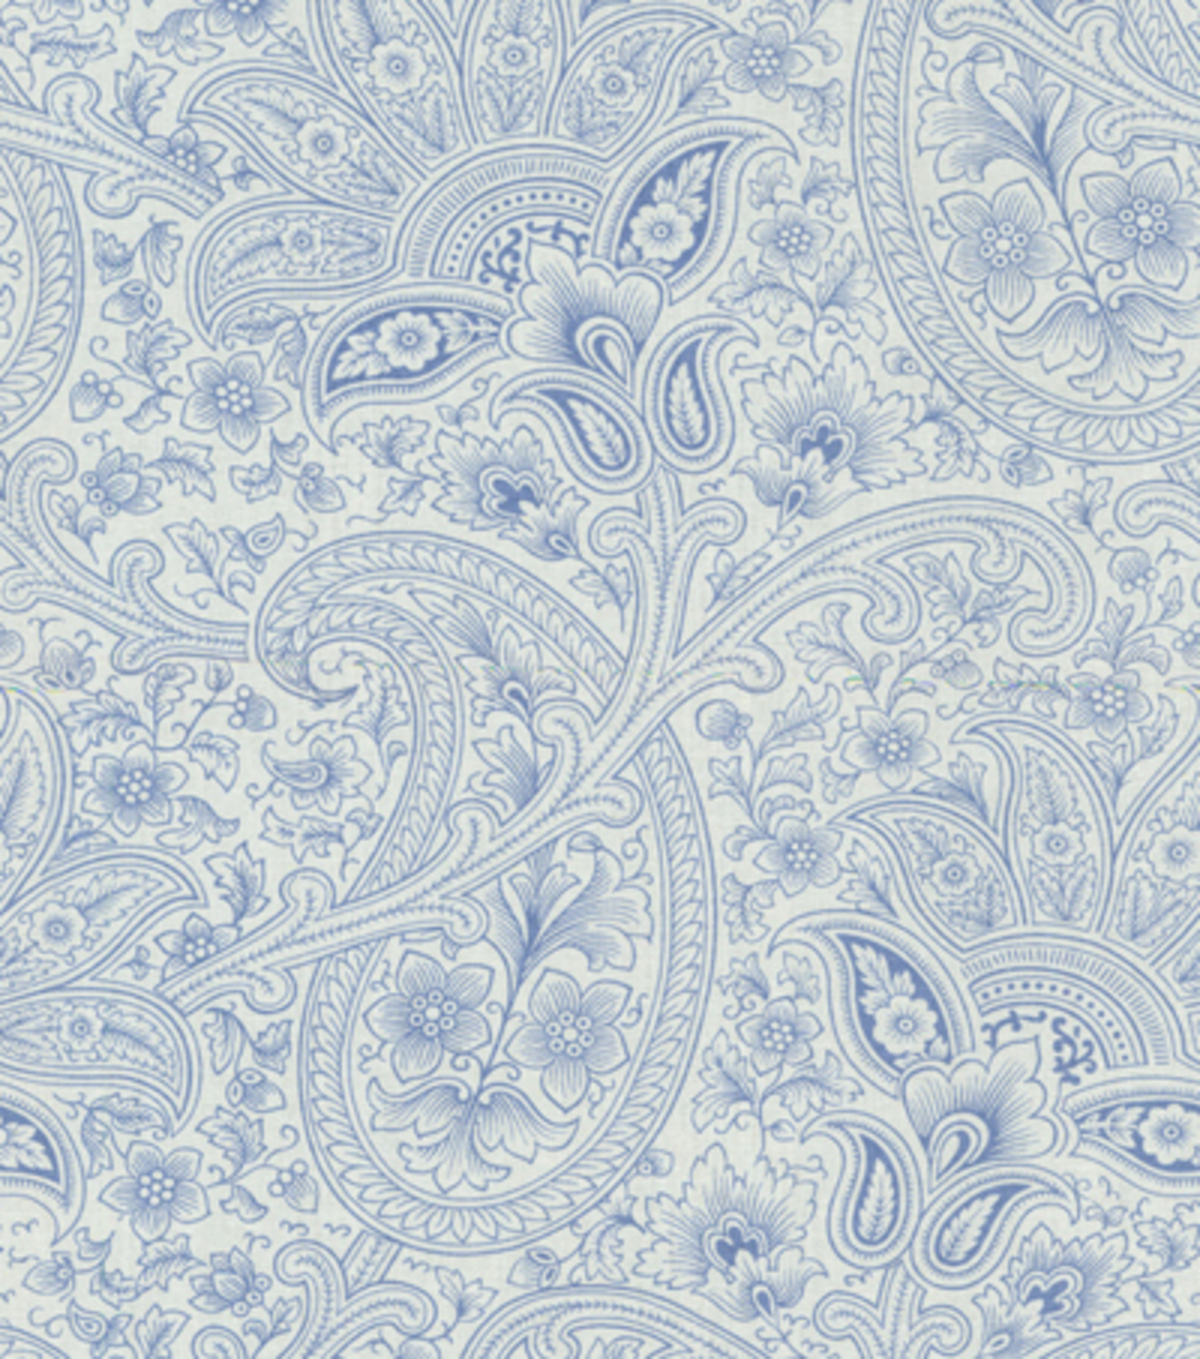 Home Decor 8\u0022x8\u0022 Fabric Swatch-Waverly Trinket/Larkspur